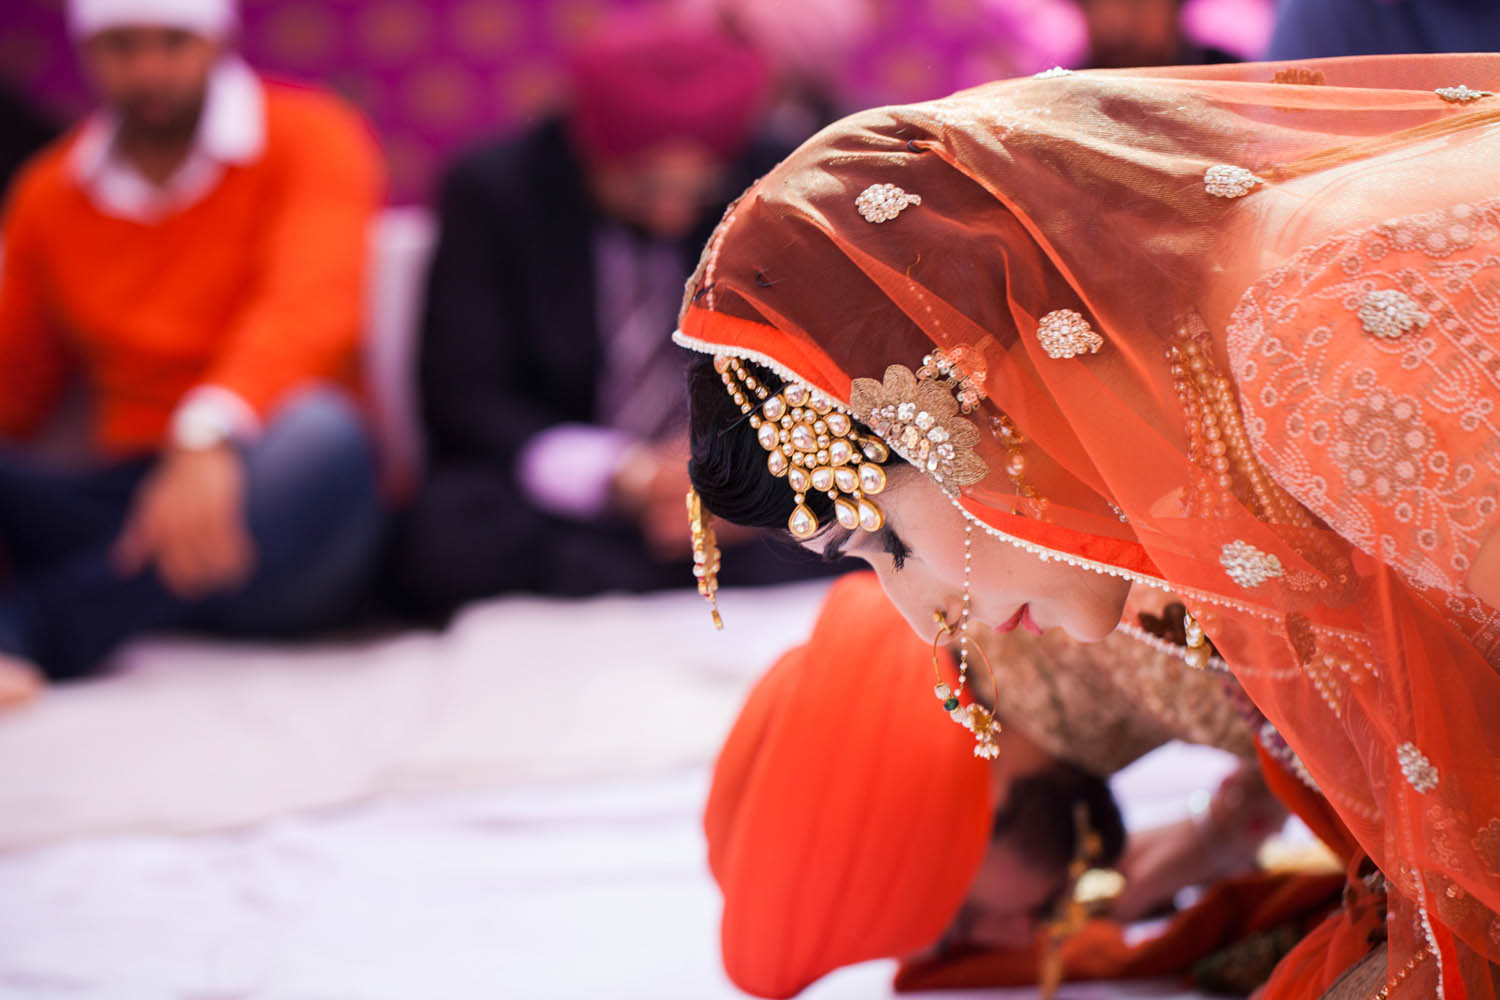 punjab_wedding45.jpg